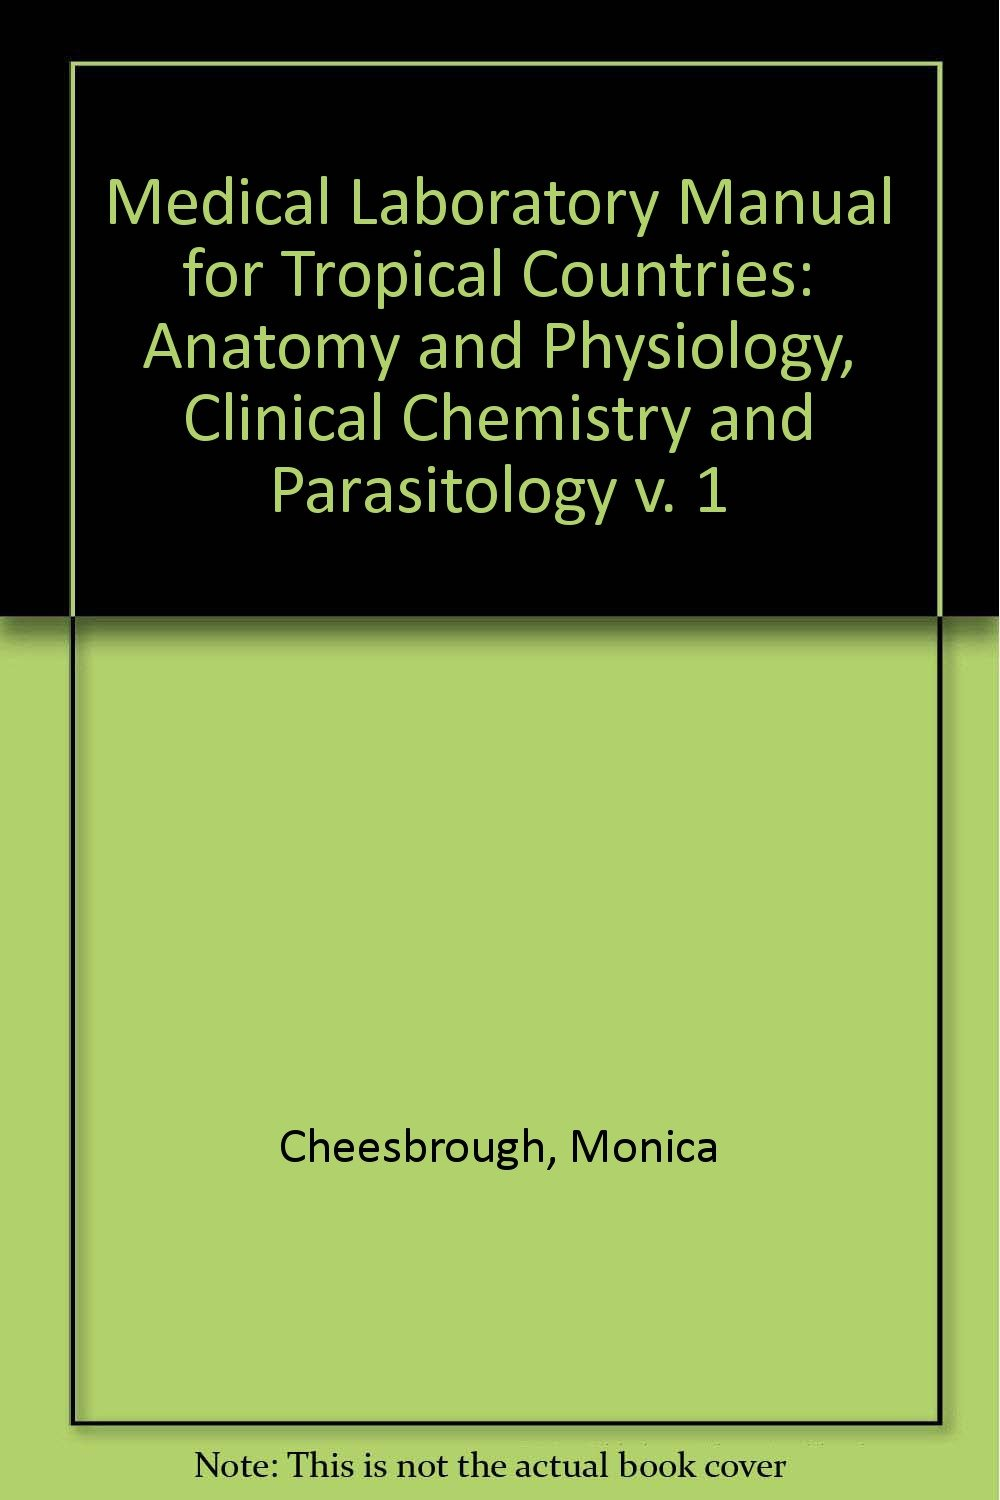 Buy Medical Laboratory Manual for Tropical Countries: Anatomy and ...